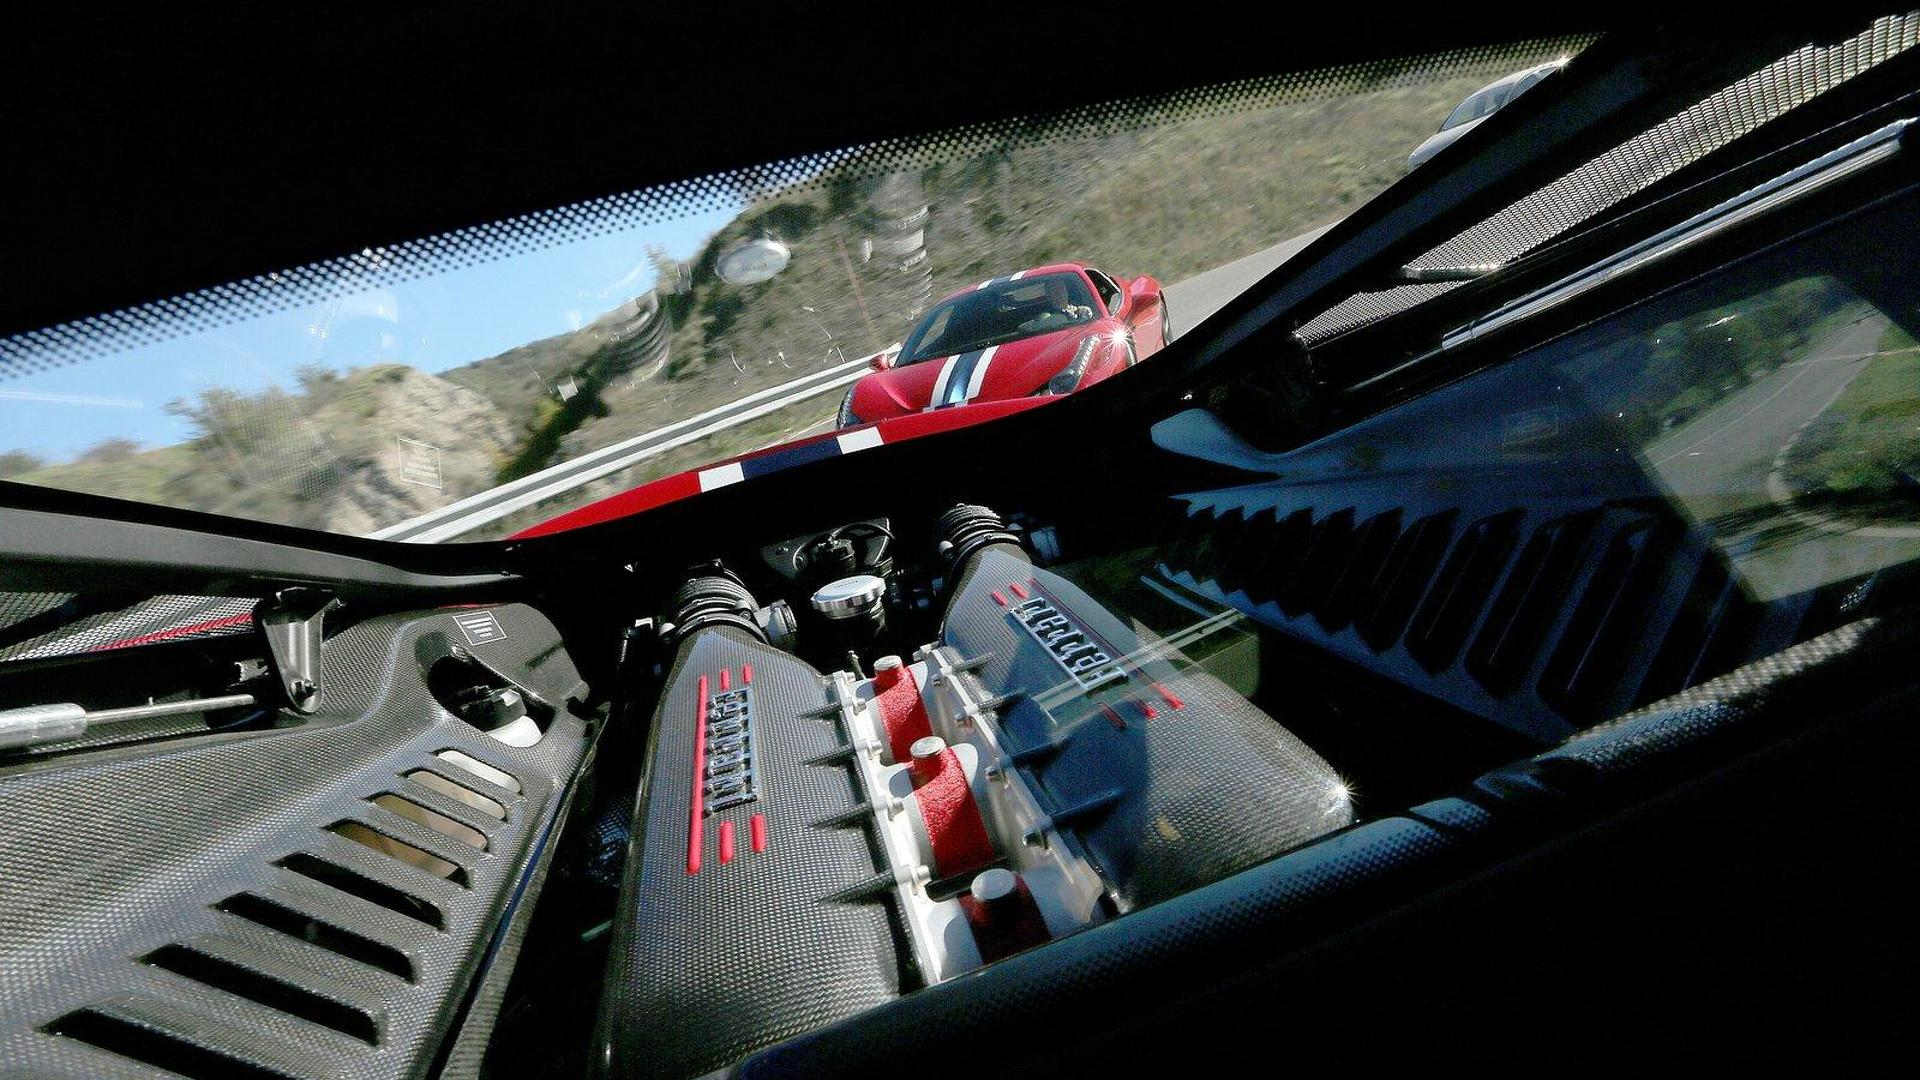 Ferrari 458 Speciale buyers must select more extra equipment or risk losing the order